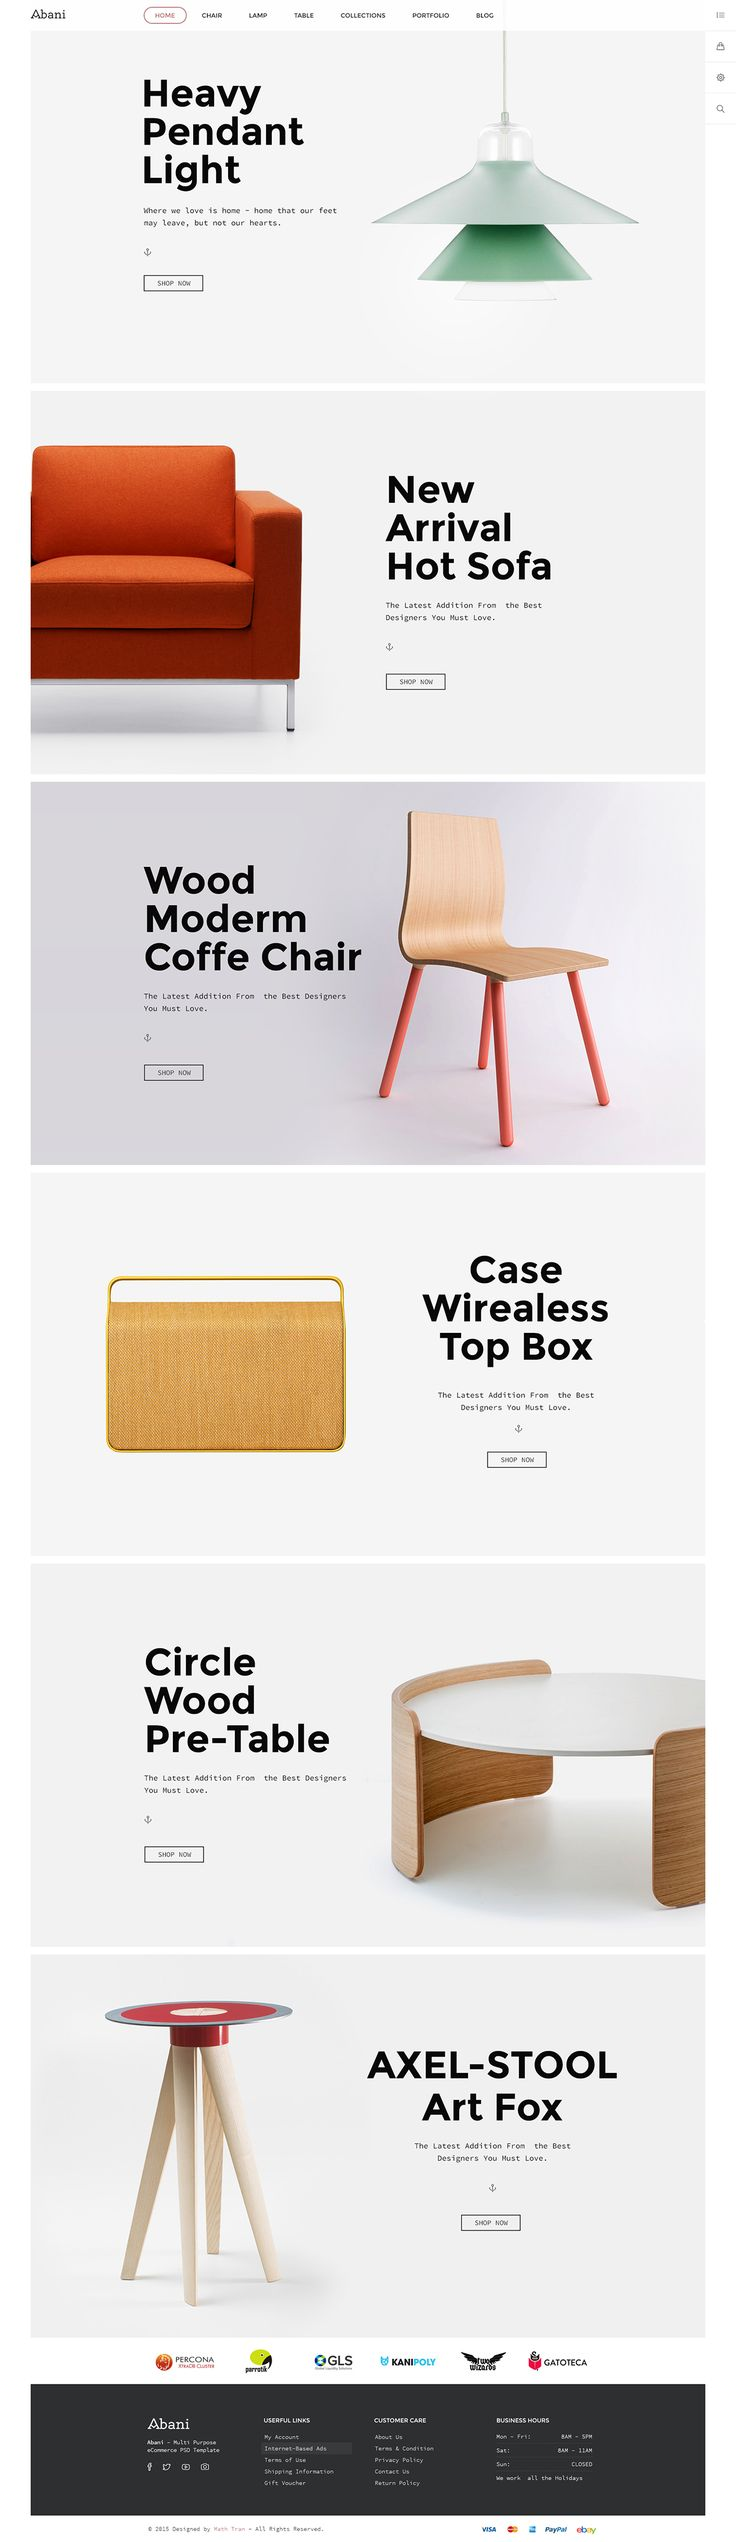 Furniture Design Online furnitureca is more than just an online furniture store its a better way to shop online for furniture home dcor and so much more Abani Multi Purpose Ecommerce Psd Template For Online Fashion Furniture Jewelry And Digital